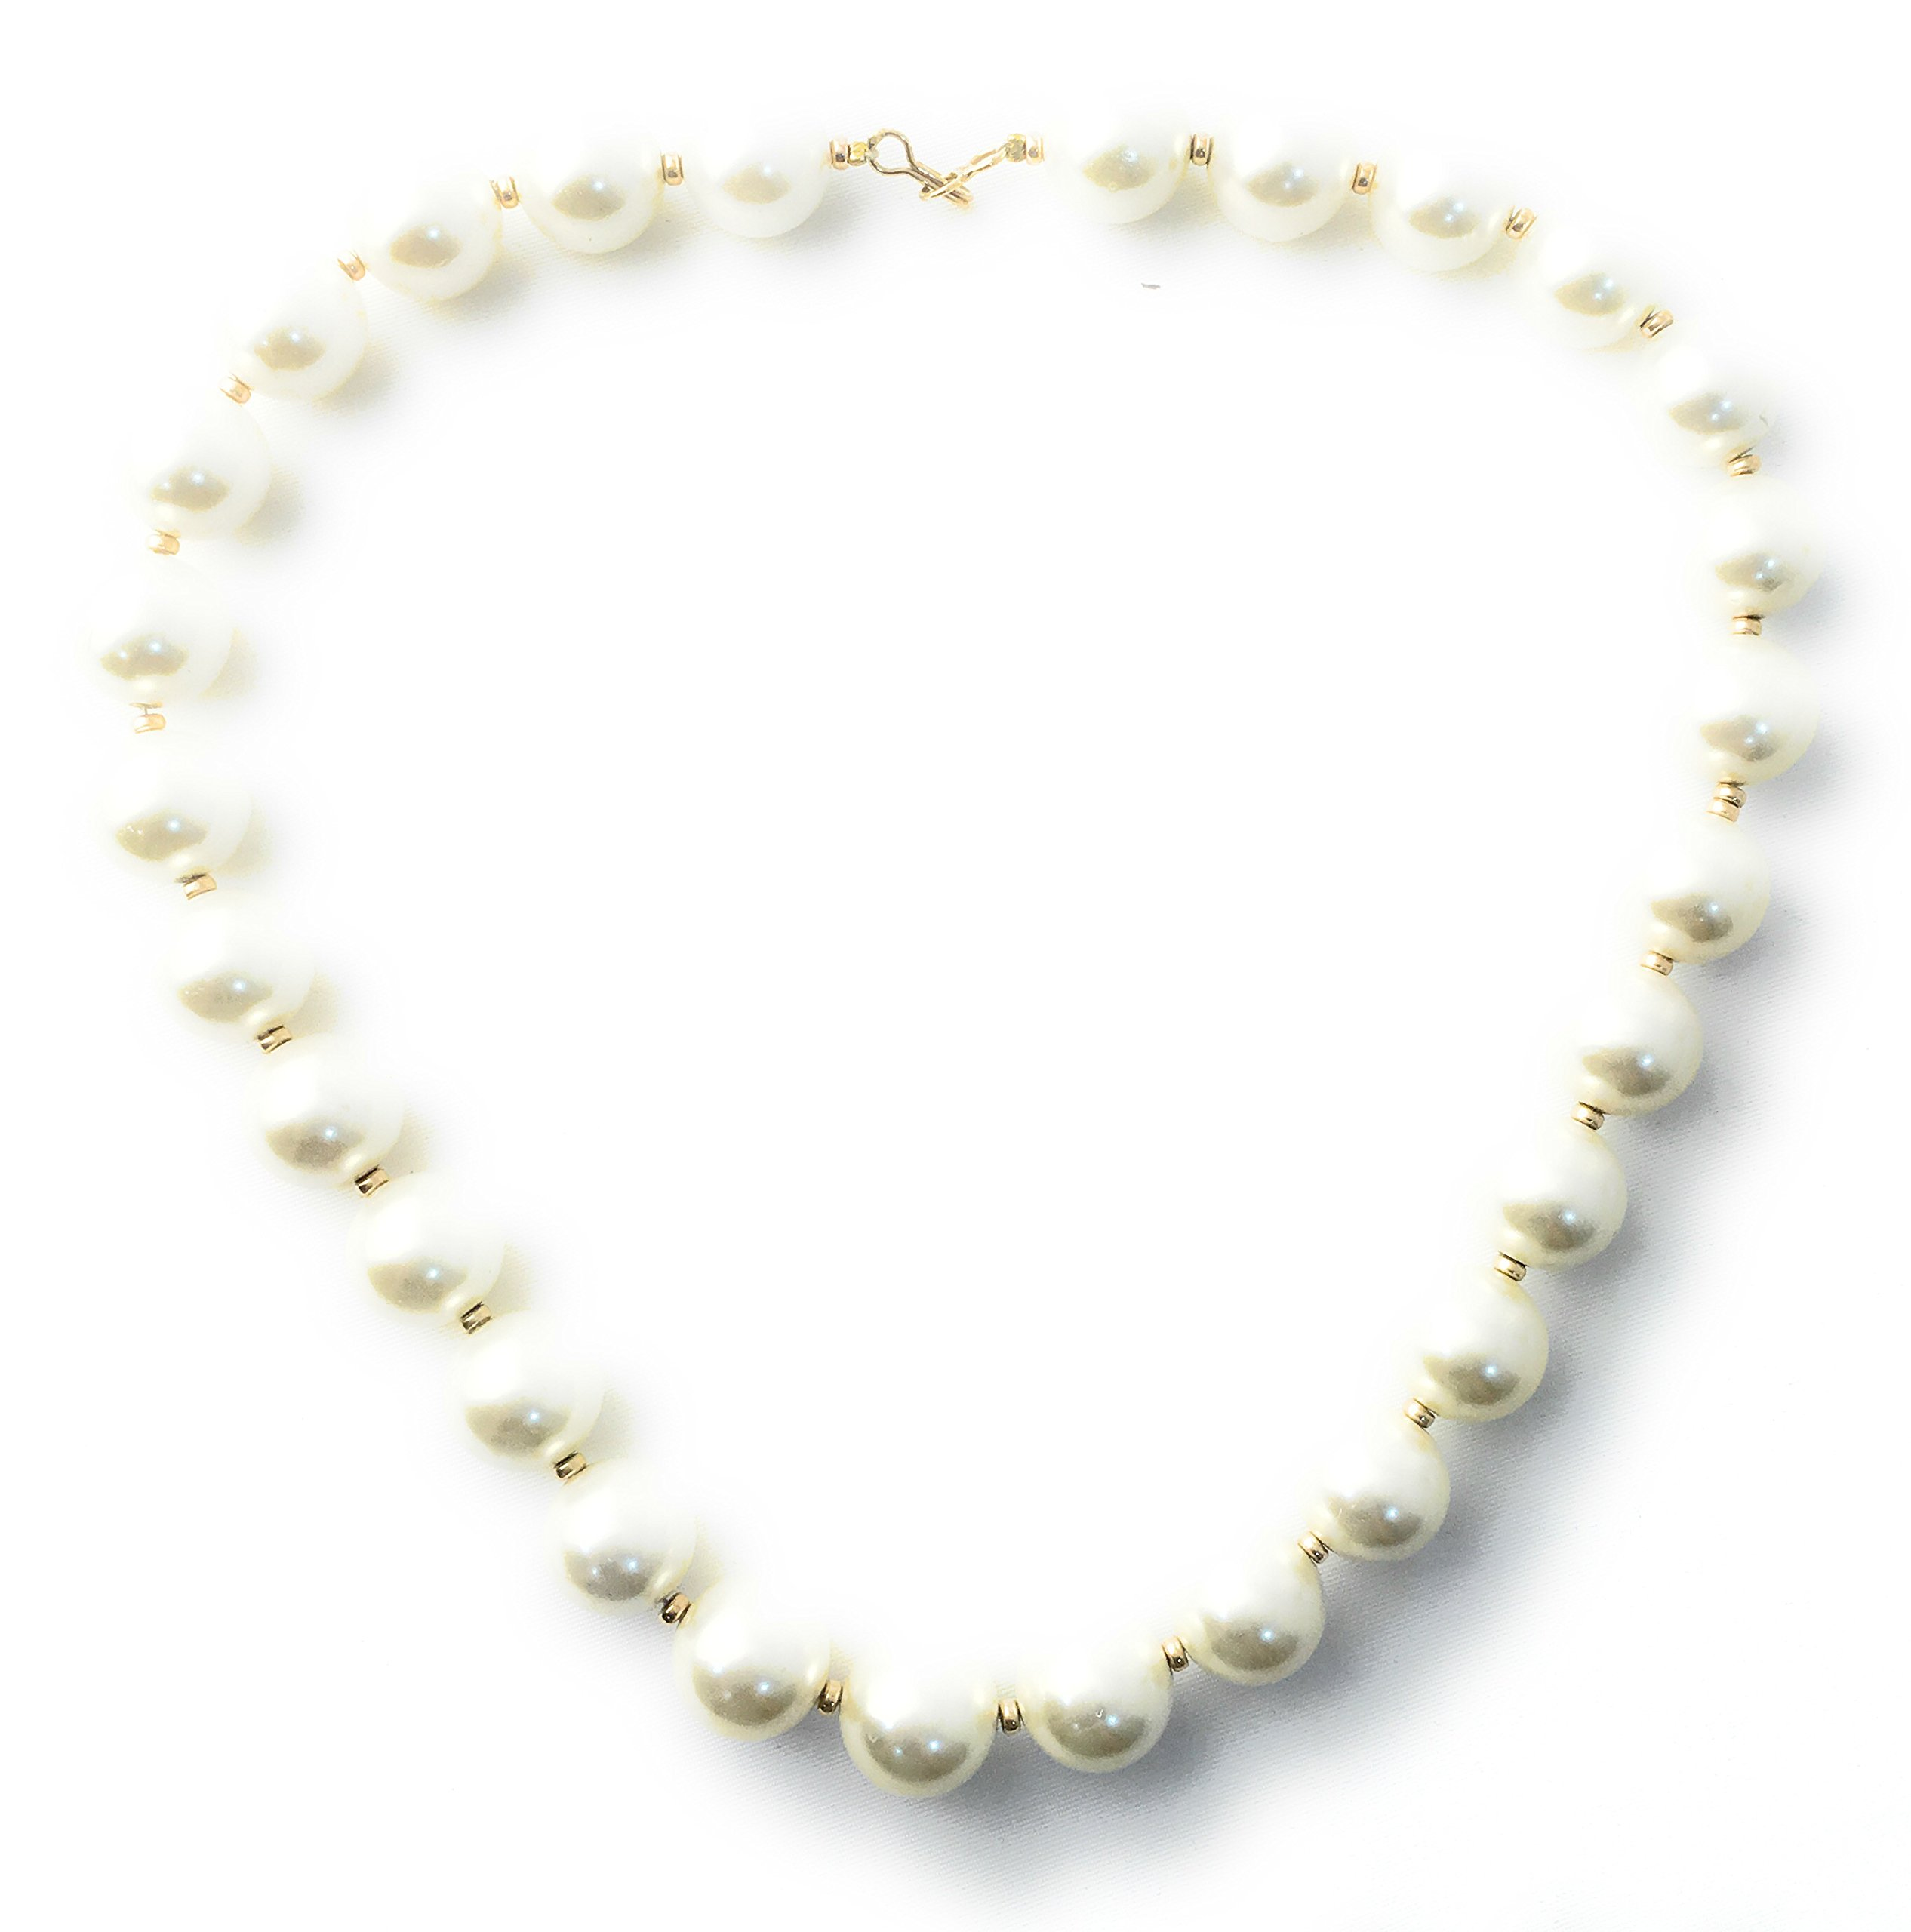 Masha Storewide Sale ! Sterling Silver Necklace By Beautiful Classic, Cultured Pearls, Gold Filled Beads, Made in USA - Exclusive Southwestern Handmade Jewelry, Gift